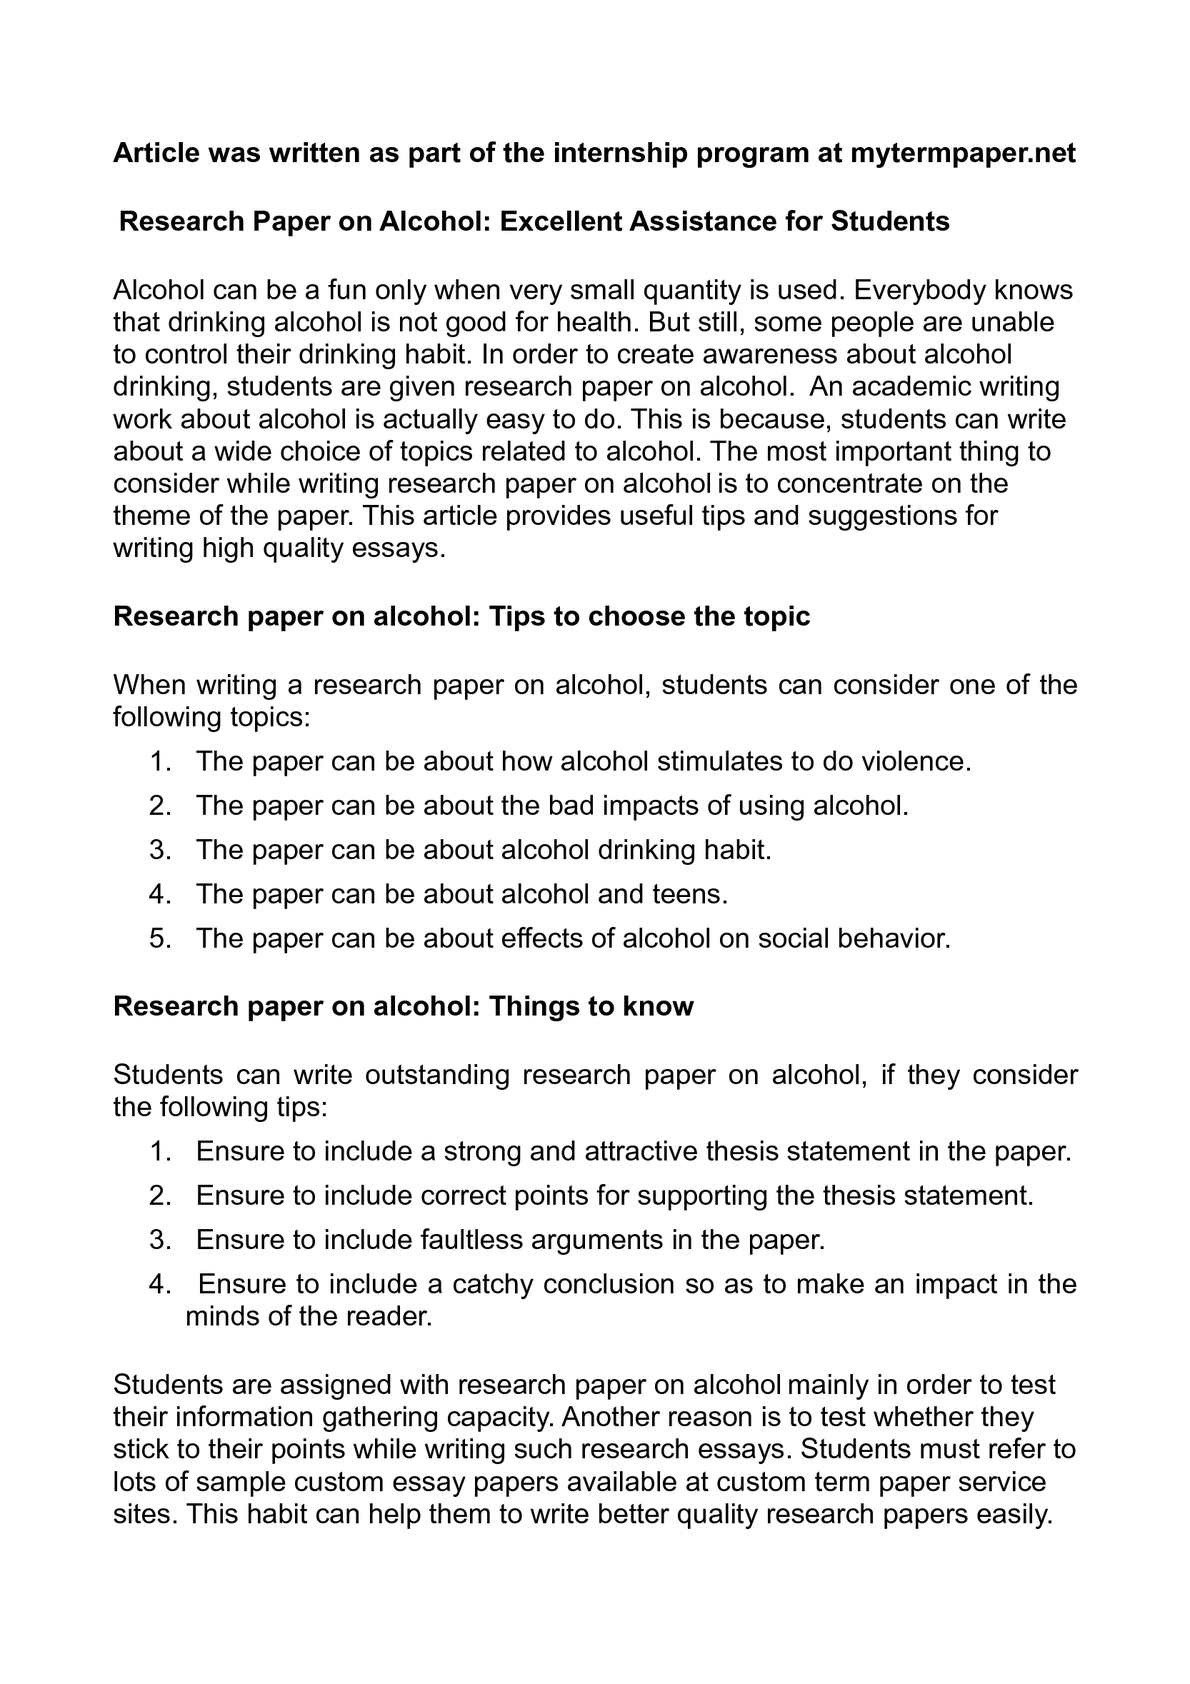 001 Research Paper On Alcohol Awesome Alcoholism And Family Articles Sample Substance Abuse Full